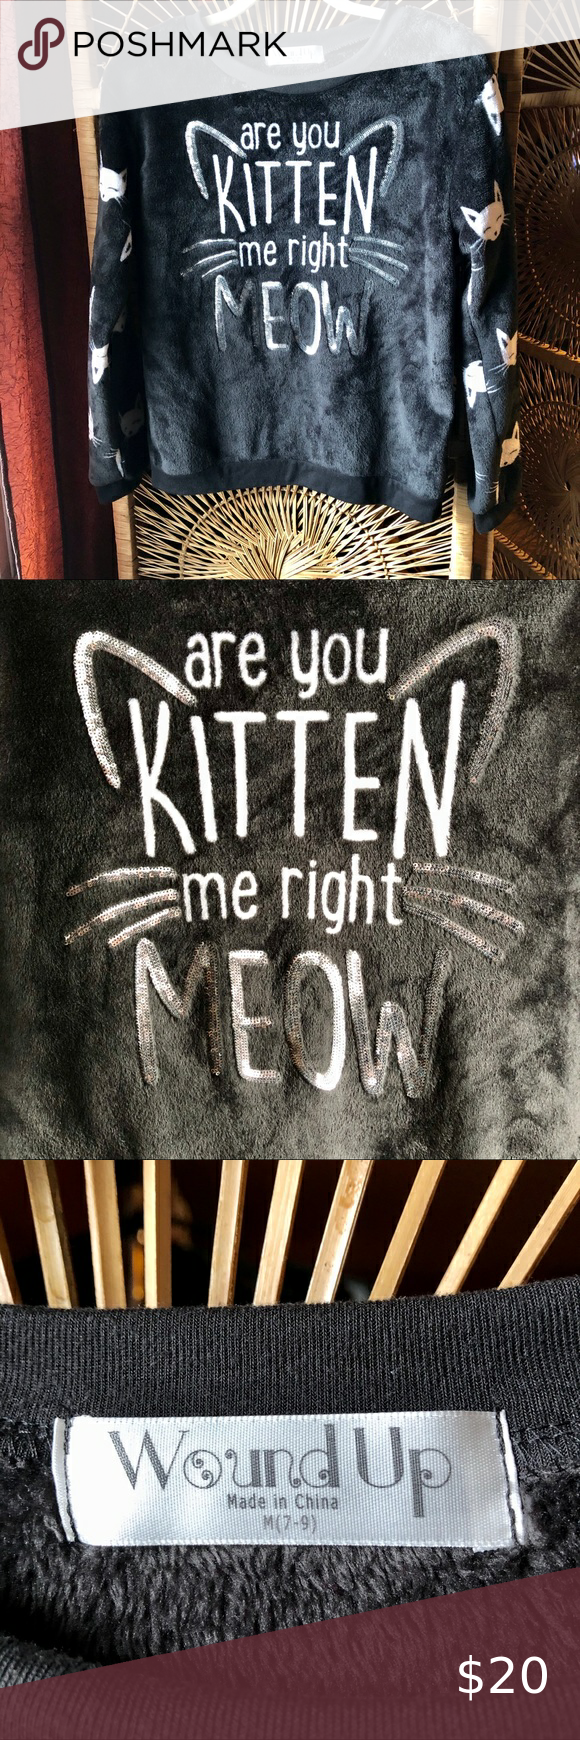 Wound Up Are You Kitten Me Cat Sweatshirt Sequins In 2020 Cat Sweatshirt Cat Sweaters Sweatshirts